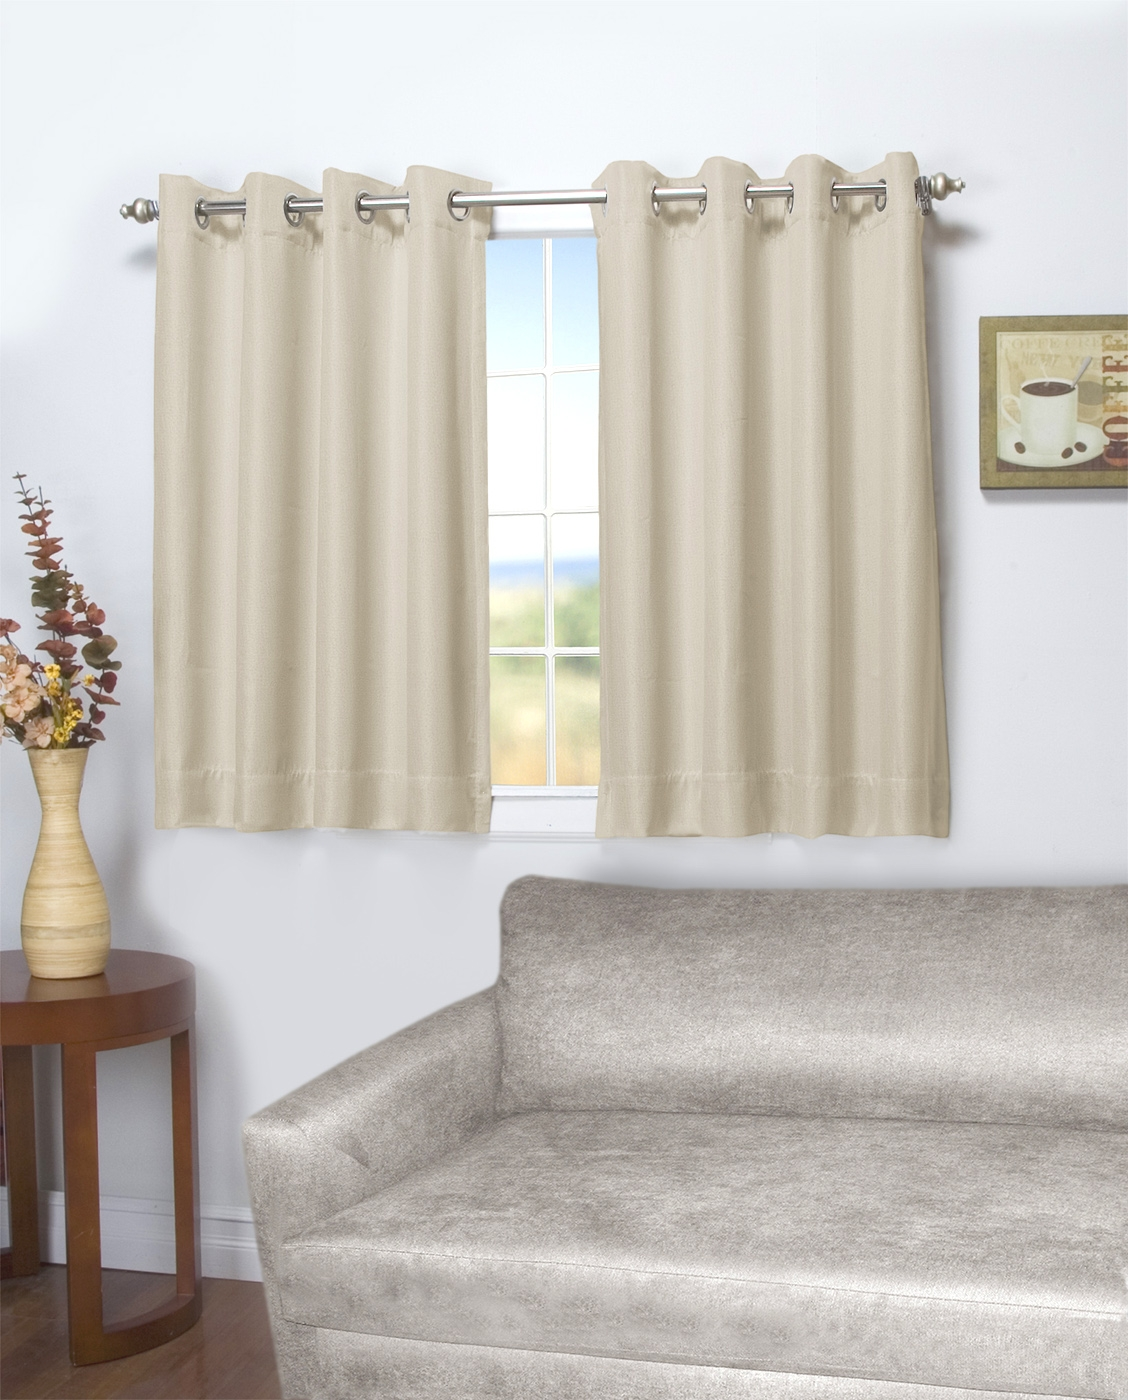 45 Inch Long Curtains Thecurtainshop In 54 Inch Long Curtain Panels (View 9 of 25)